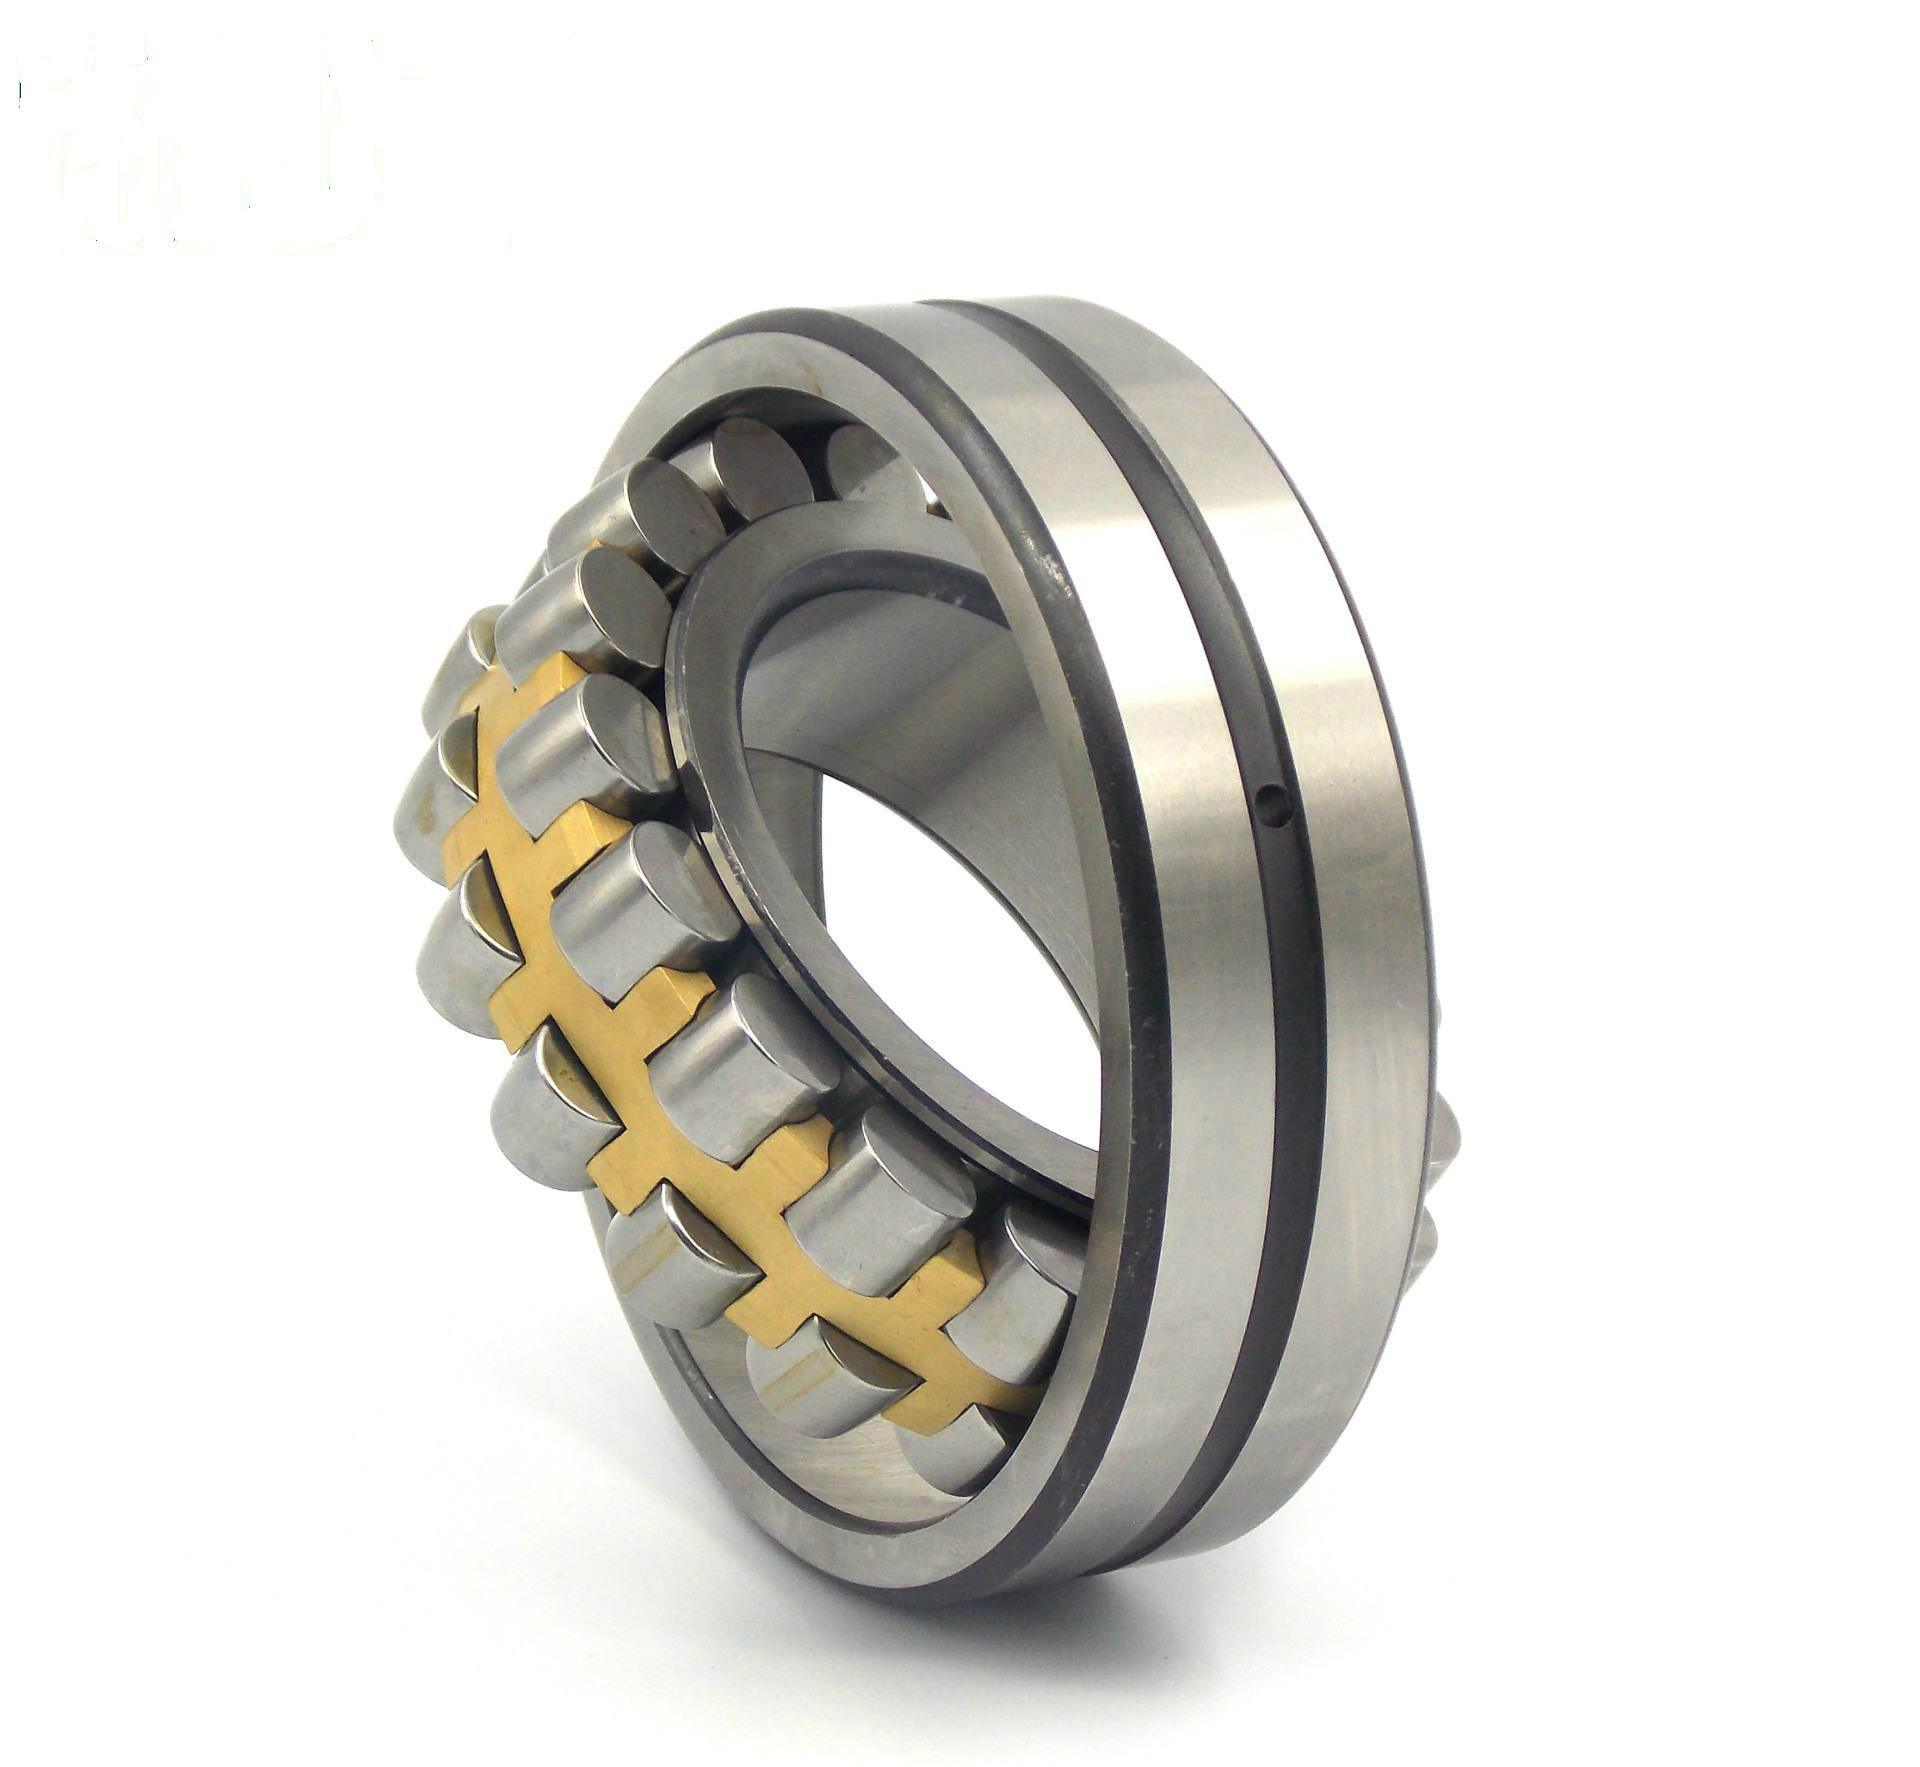 NJ 2220 ML Cylindrical roller bearing